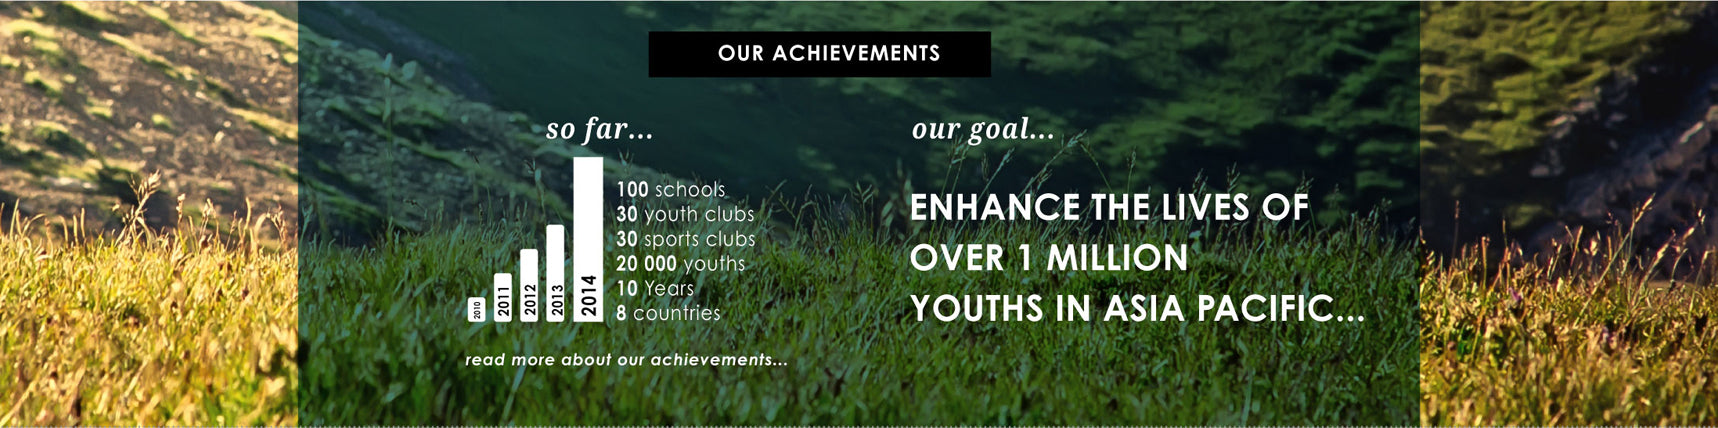 "Our Vision ""Enhancing the Lives of Youth Throughout Asia Pacific"" Get involved with SOS by volunteering, making a donation or purchasing sporting goods"